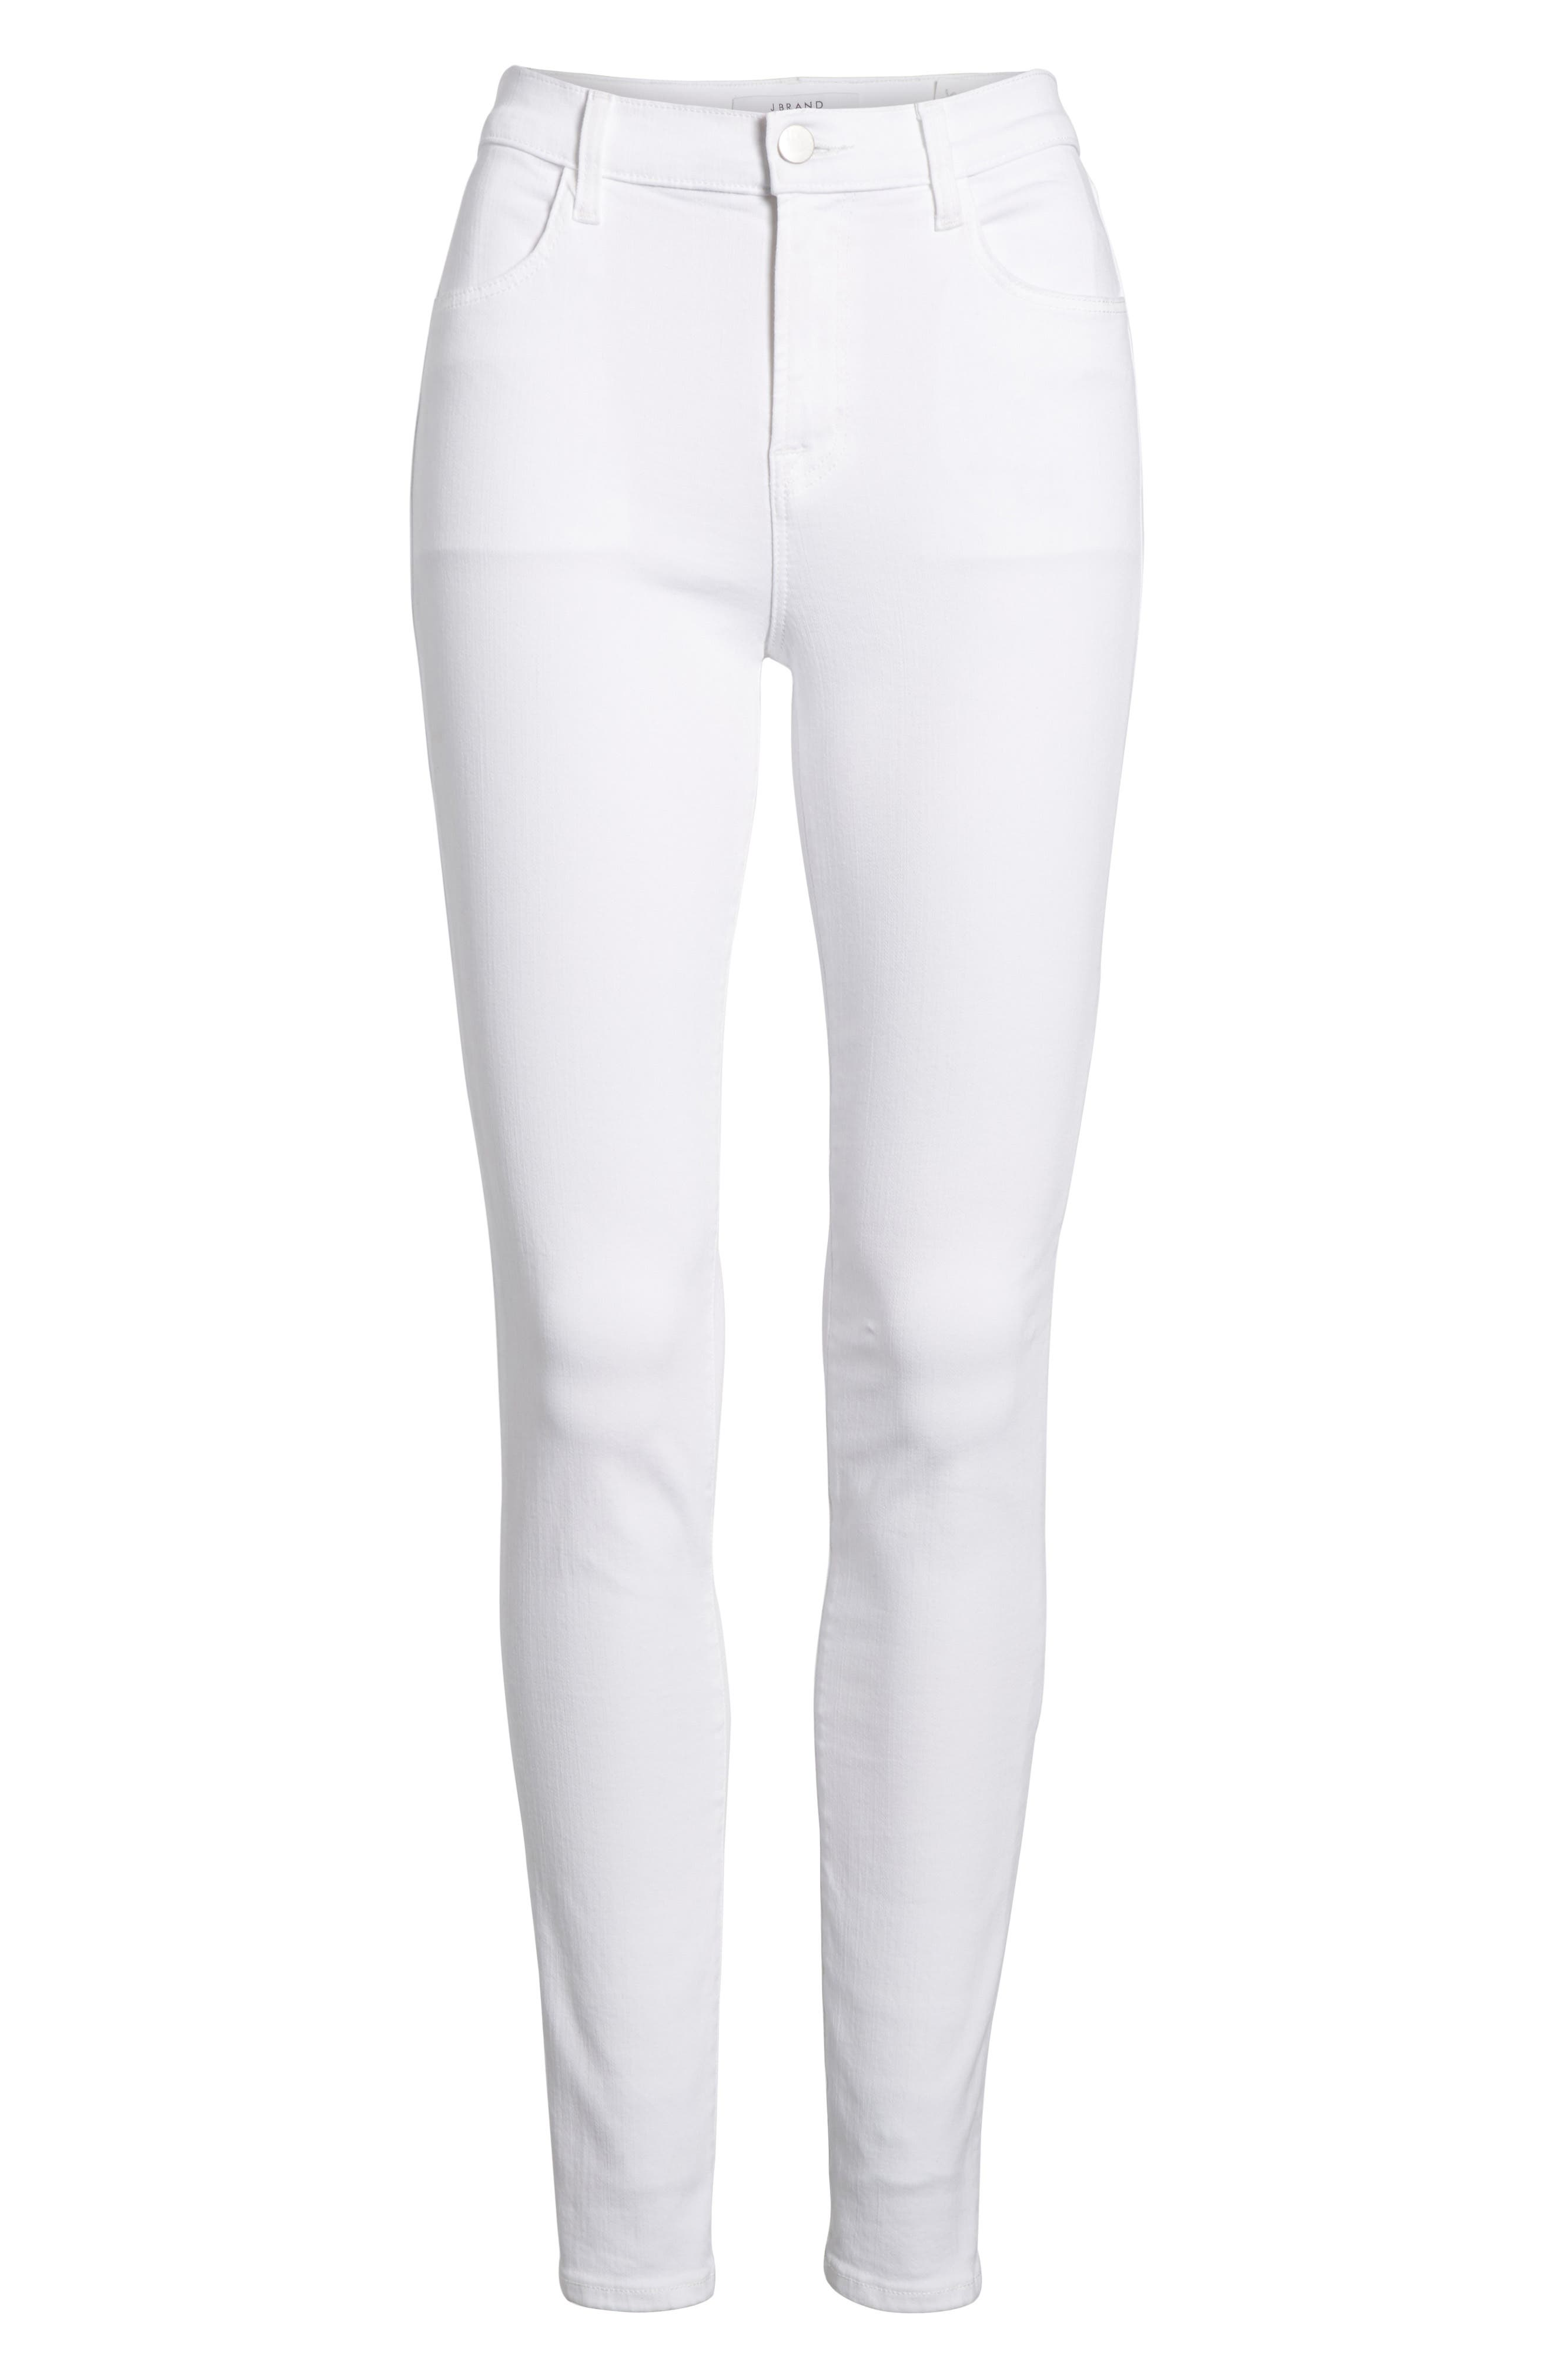 Maria High Waist Skinny Jeans,                             Alternate thumbnail 7, color,                             WHITE